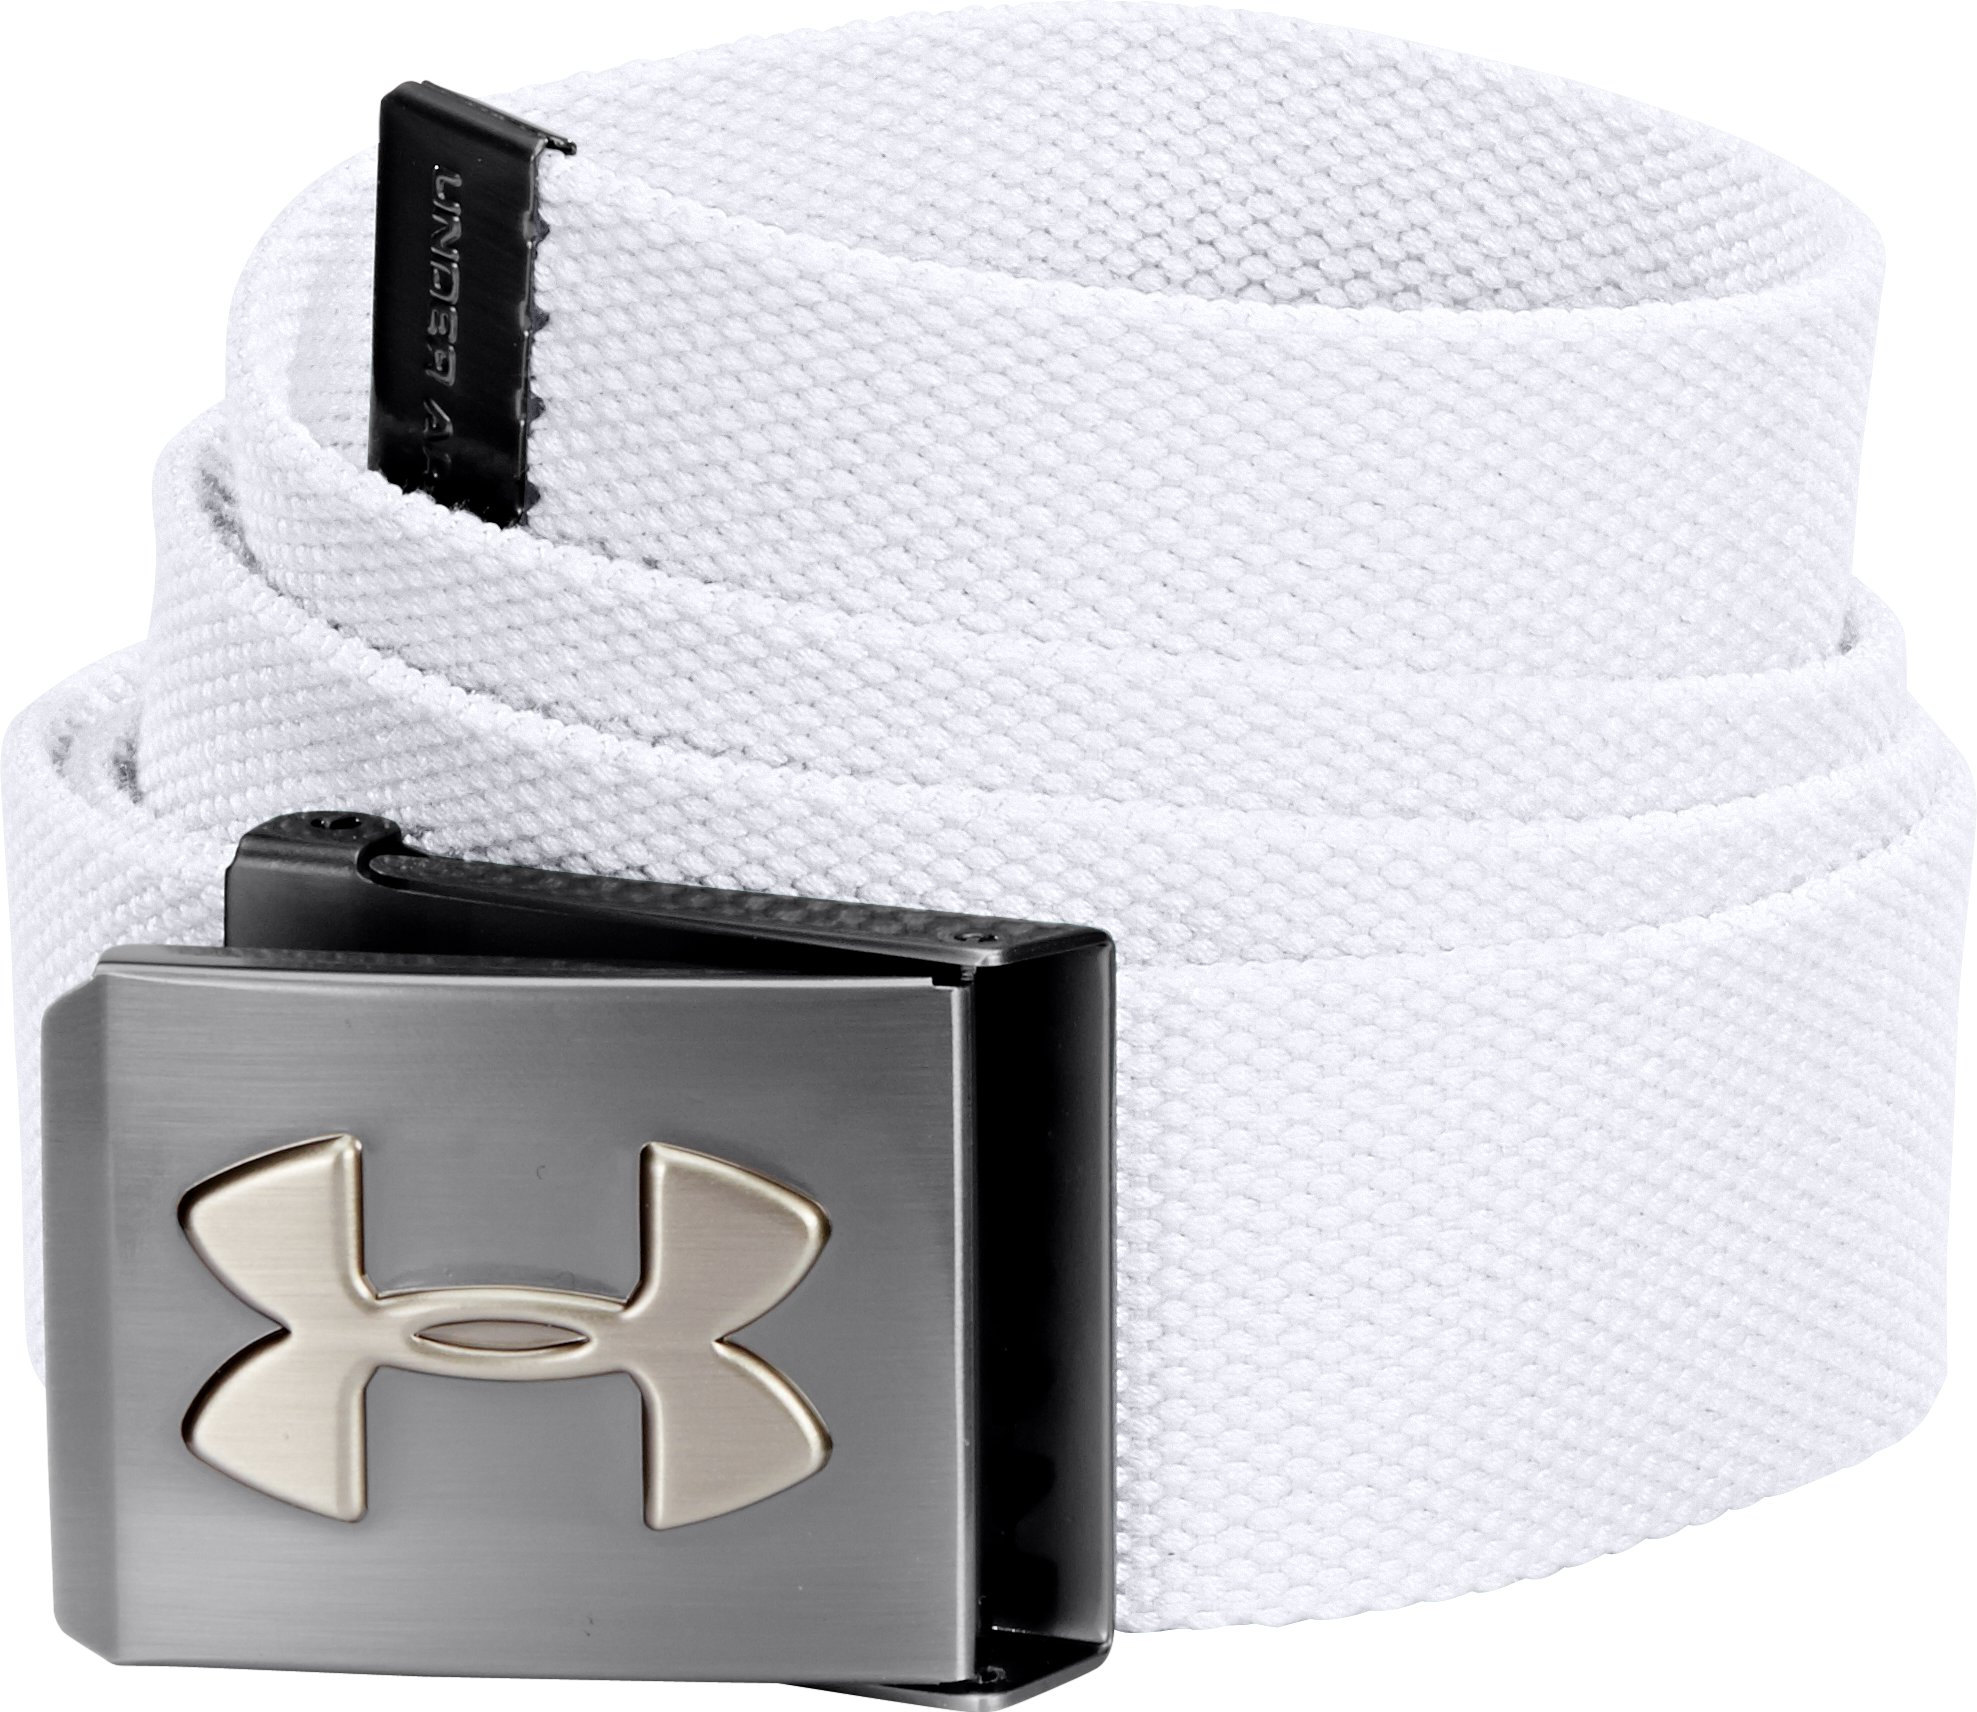 UA Webbed Belt 2 Colors $11.99 - $14.99